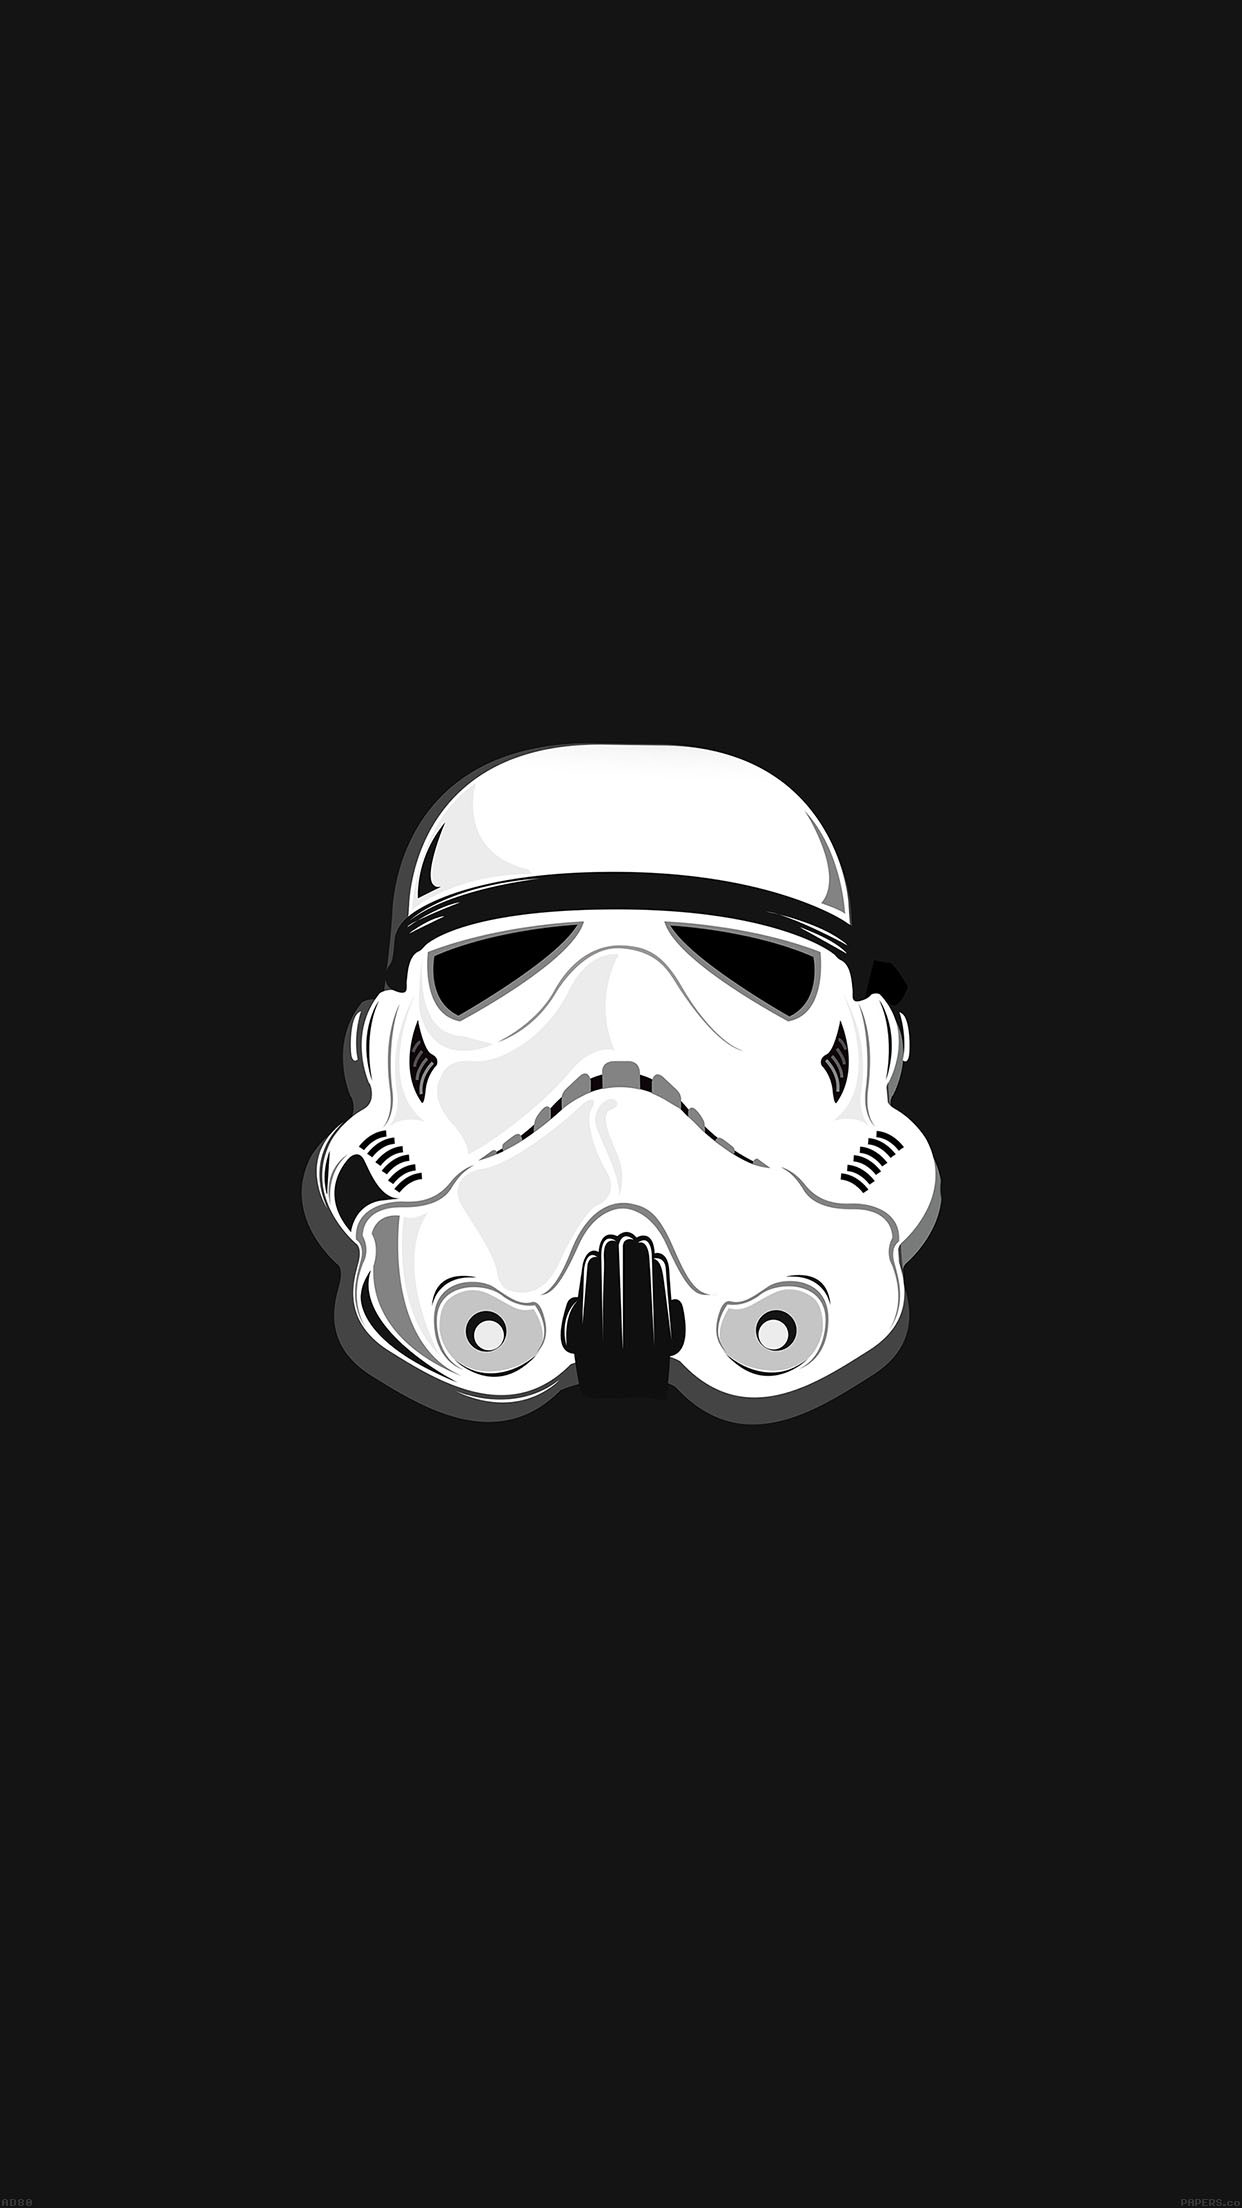 1242x2208 Storm Trooper Star Wars Illustration Android Wallpaper